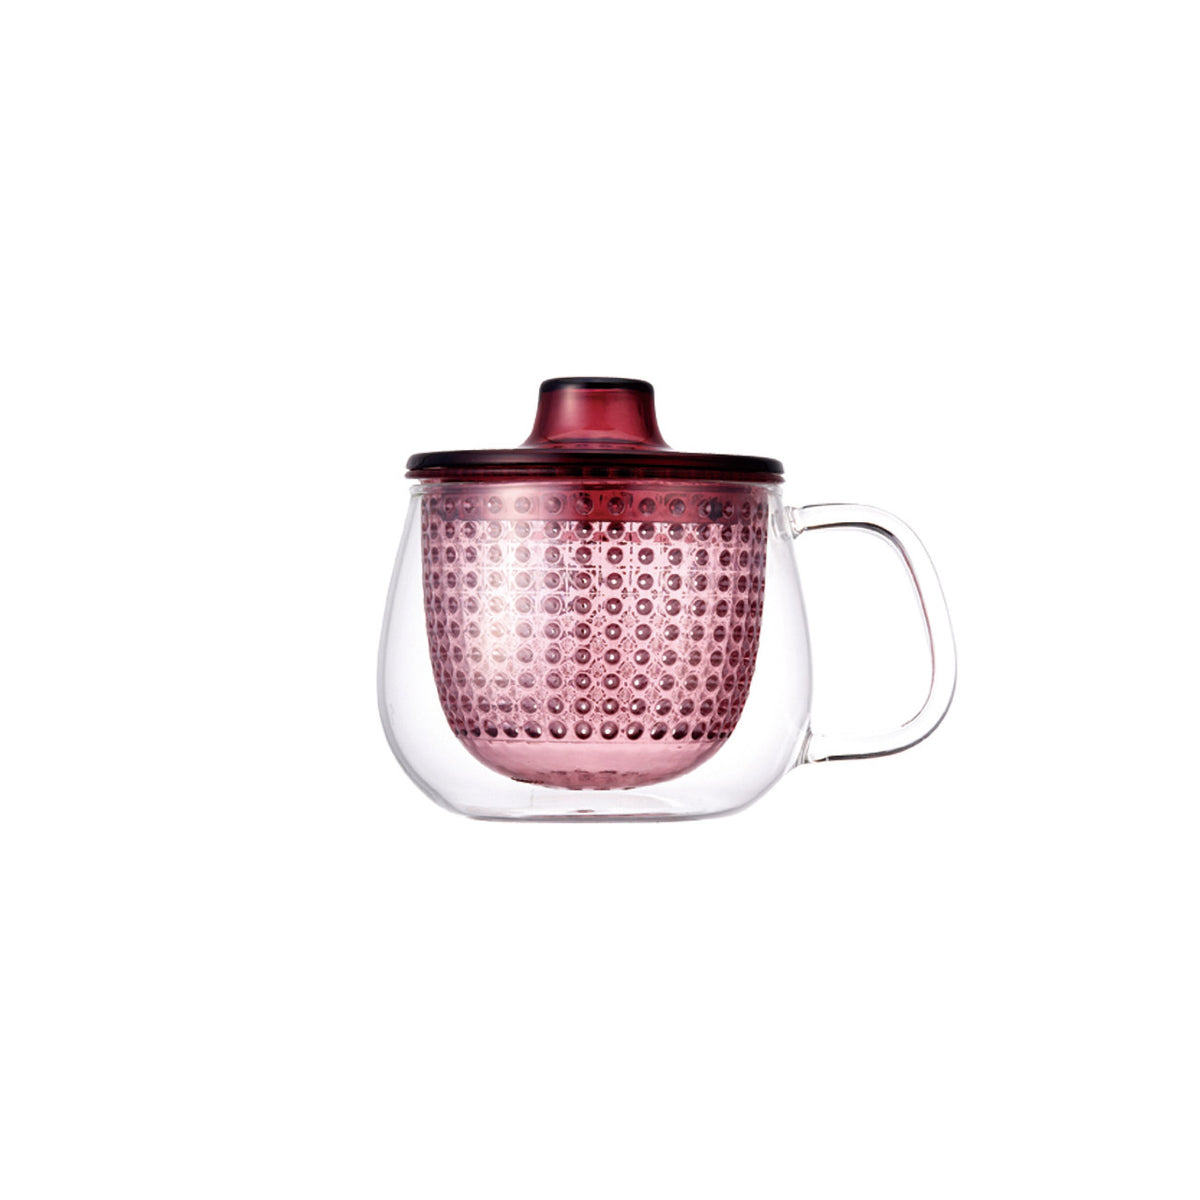 UNIMUG glass teapot in  red for loose leaf tea by The Rabbit Hole